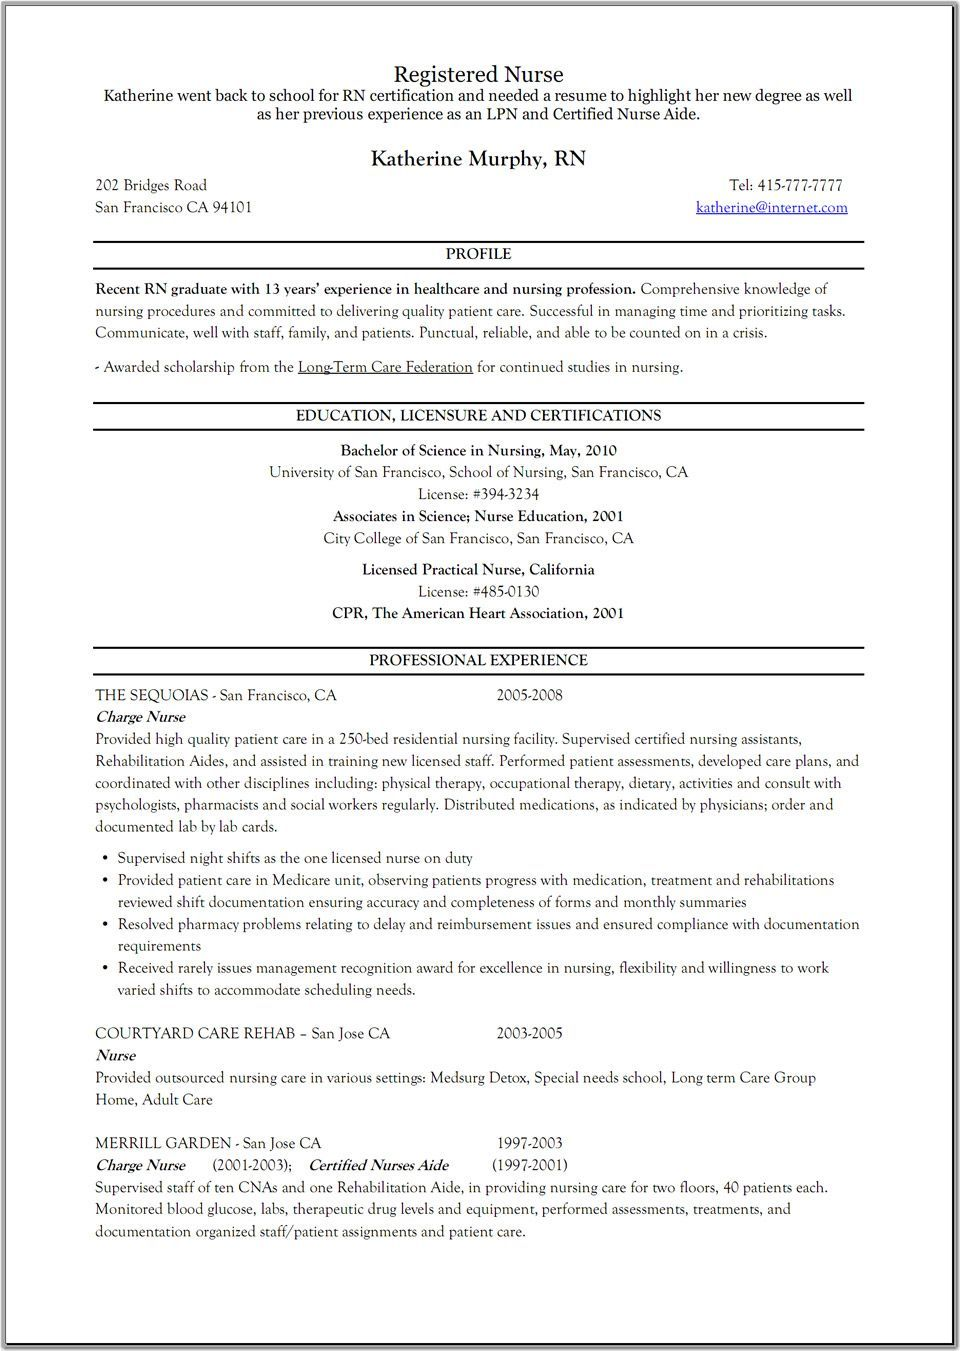 Registered Nurse Resume Samples in 2020 Registered nurse